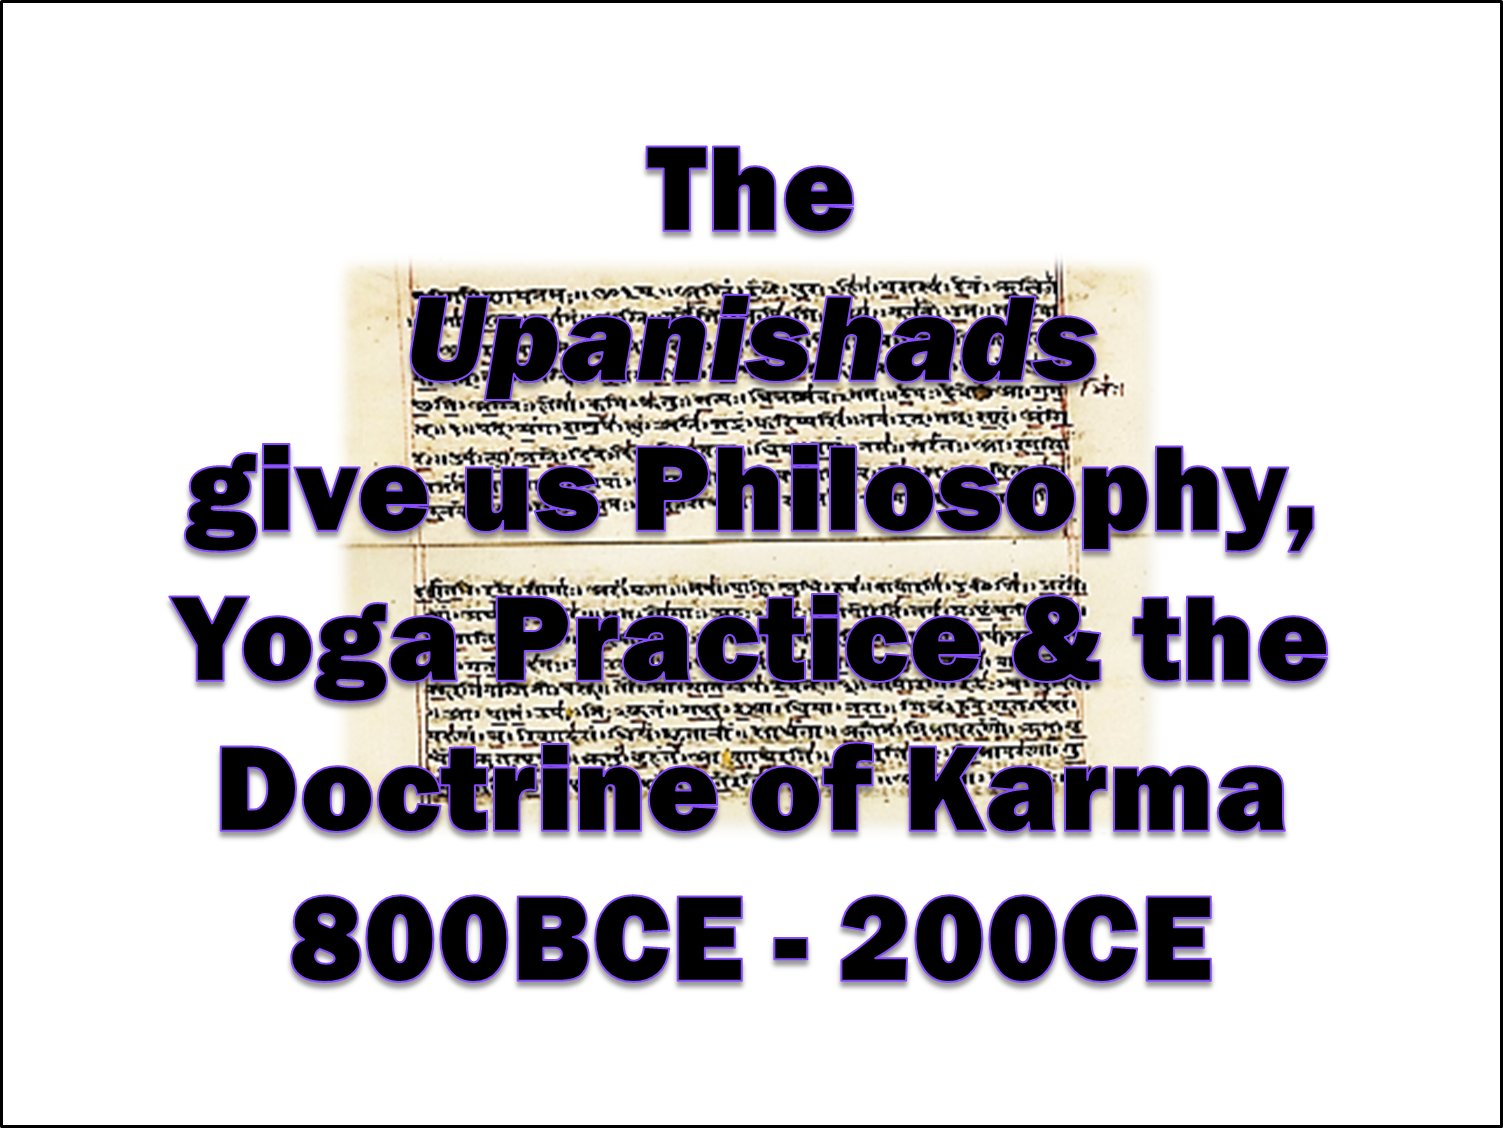 The Upanishads: 9 Tuesdays For the Depths of the Yoga Tradition, San Francisco, California